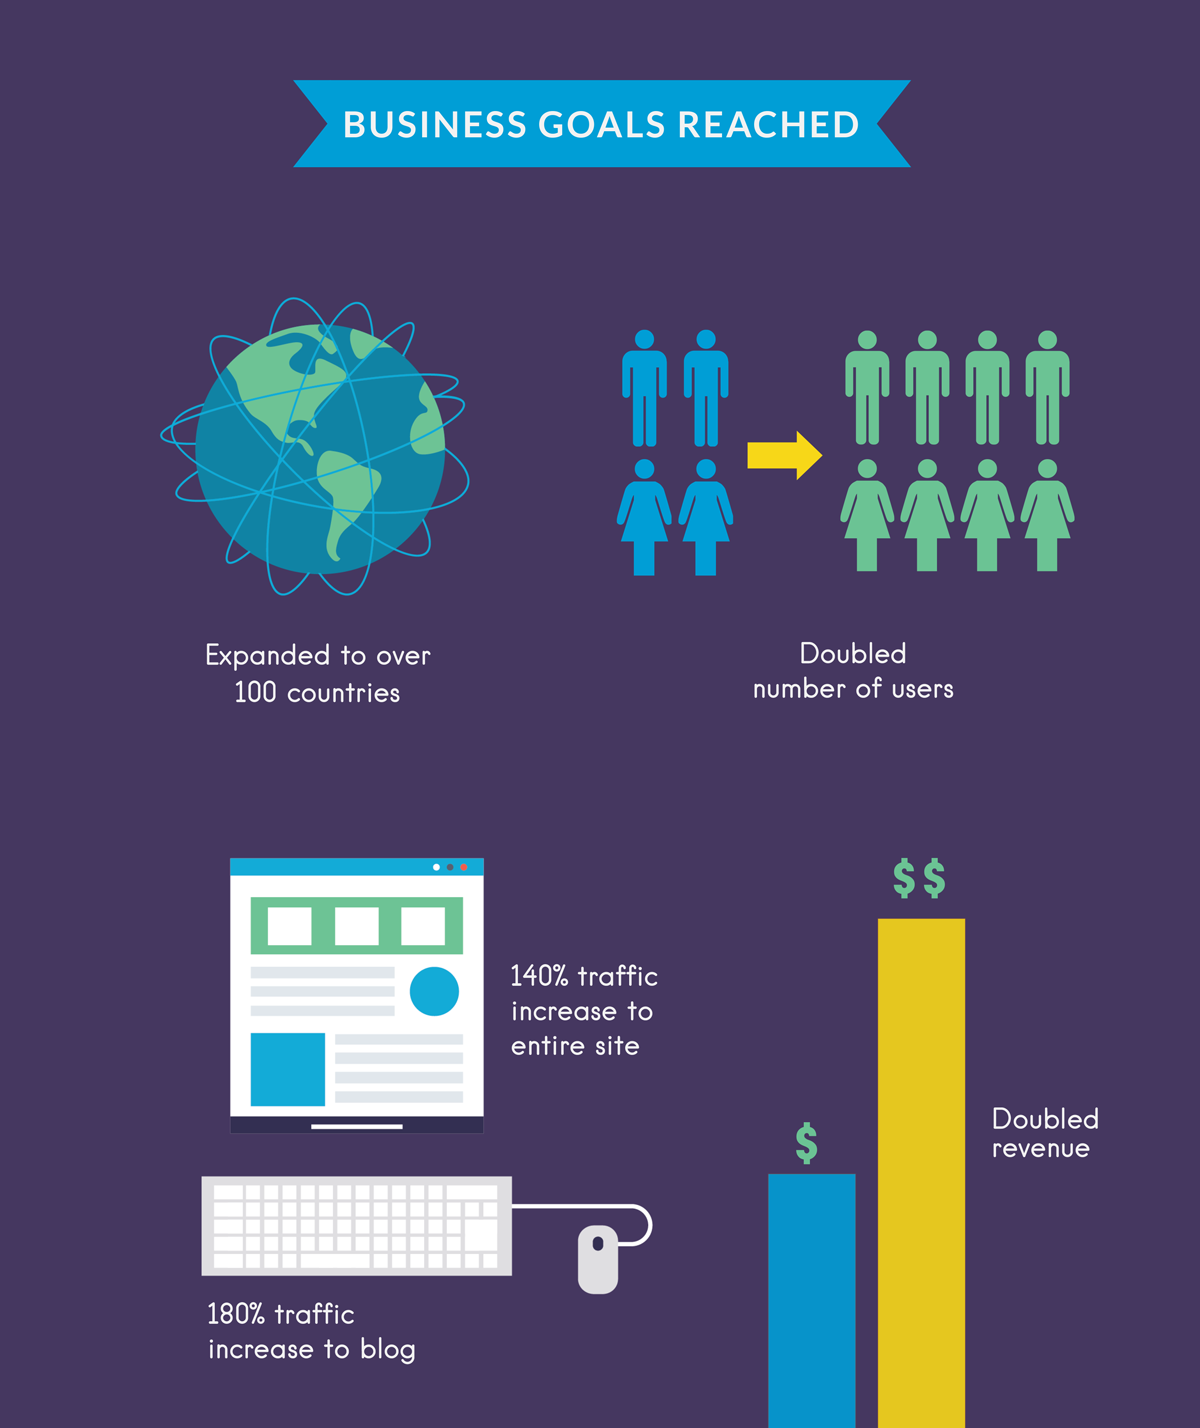 visme 2017 year in review business goals reached